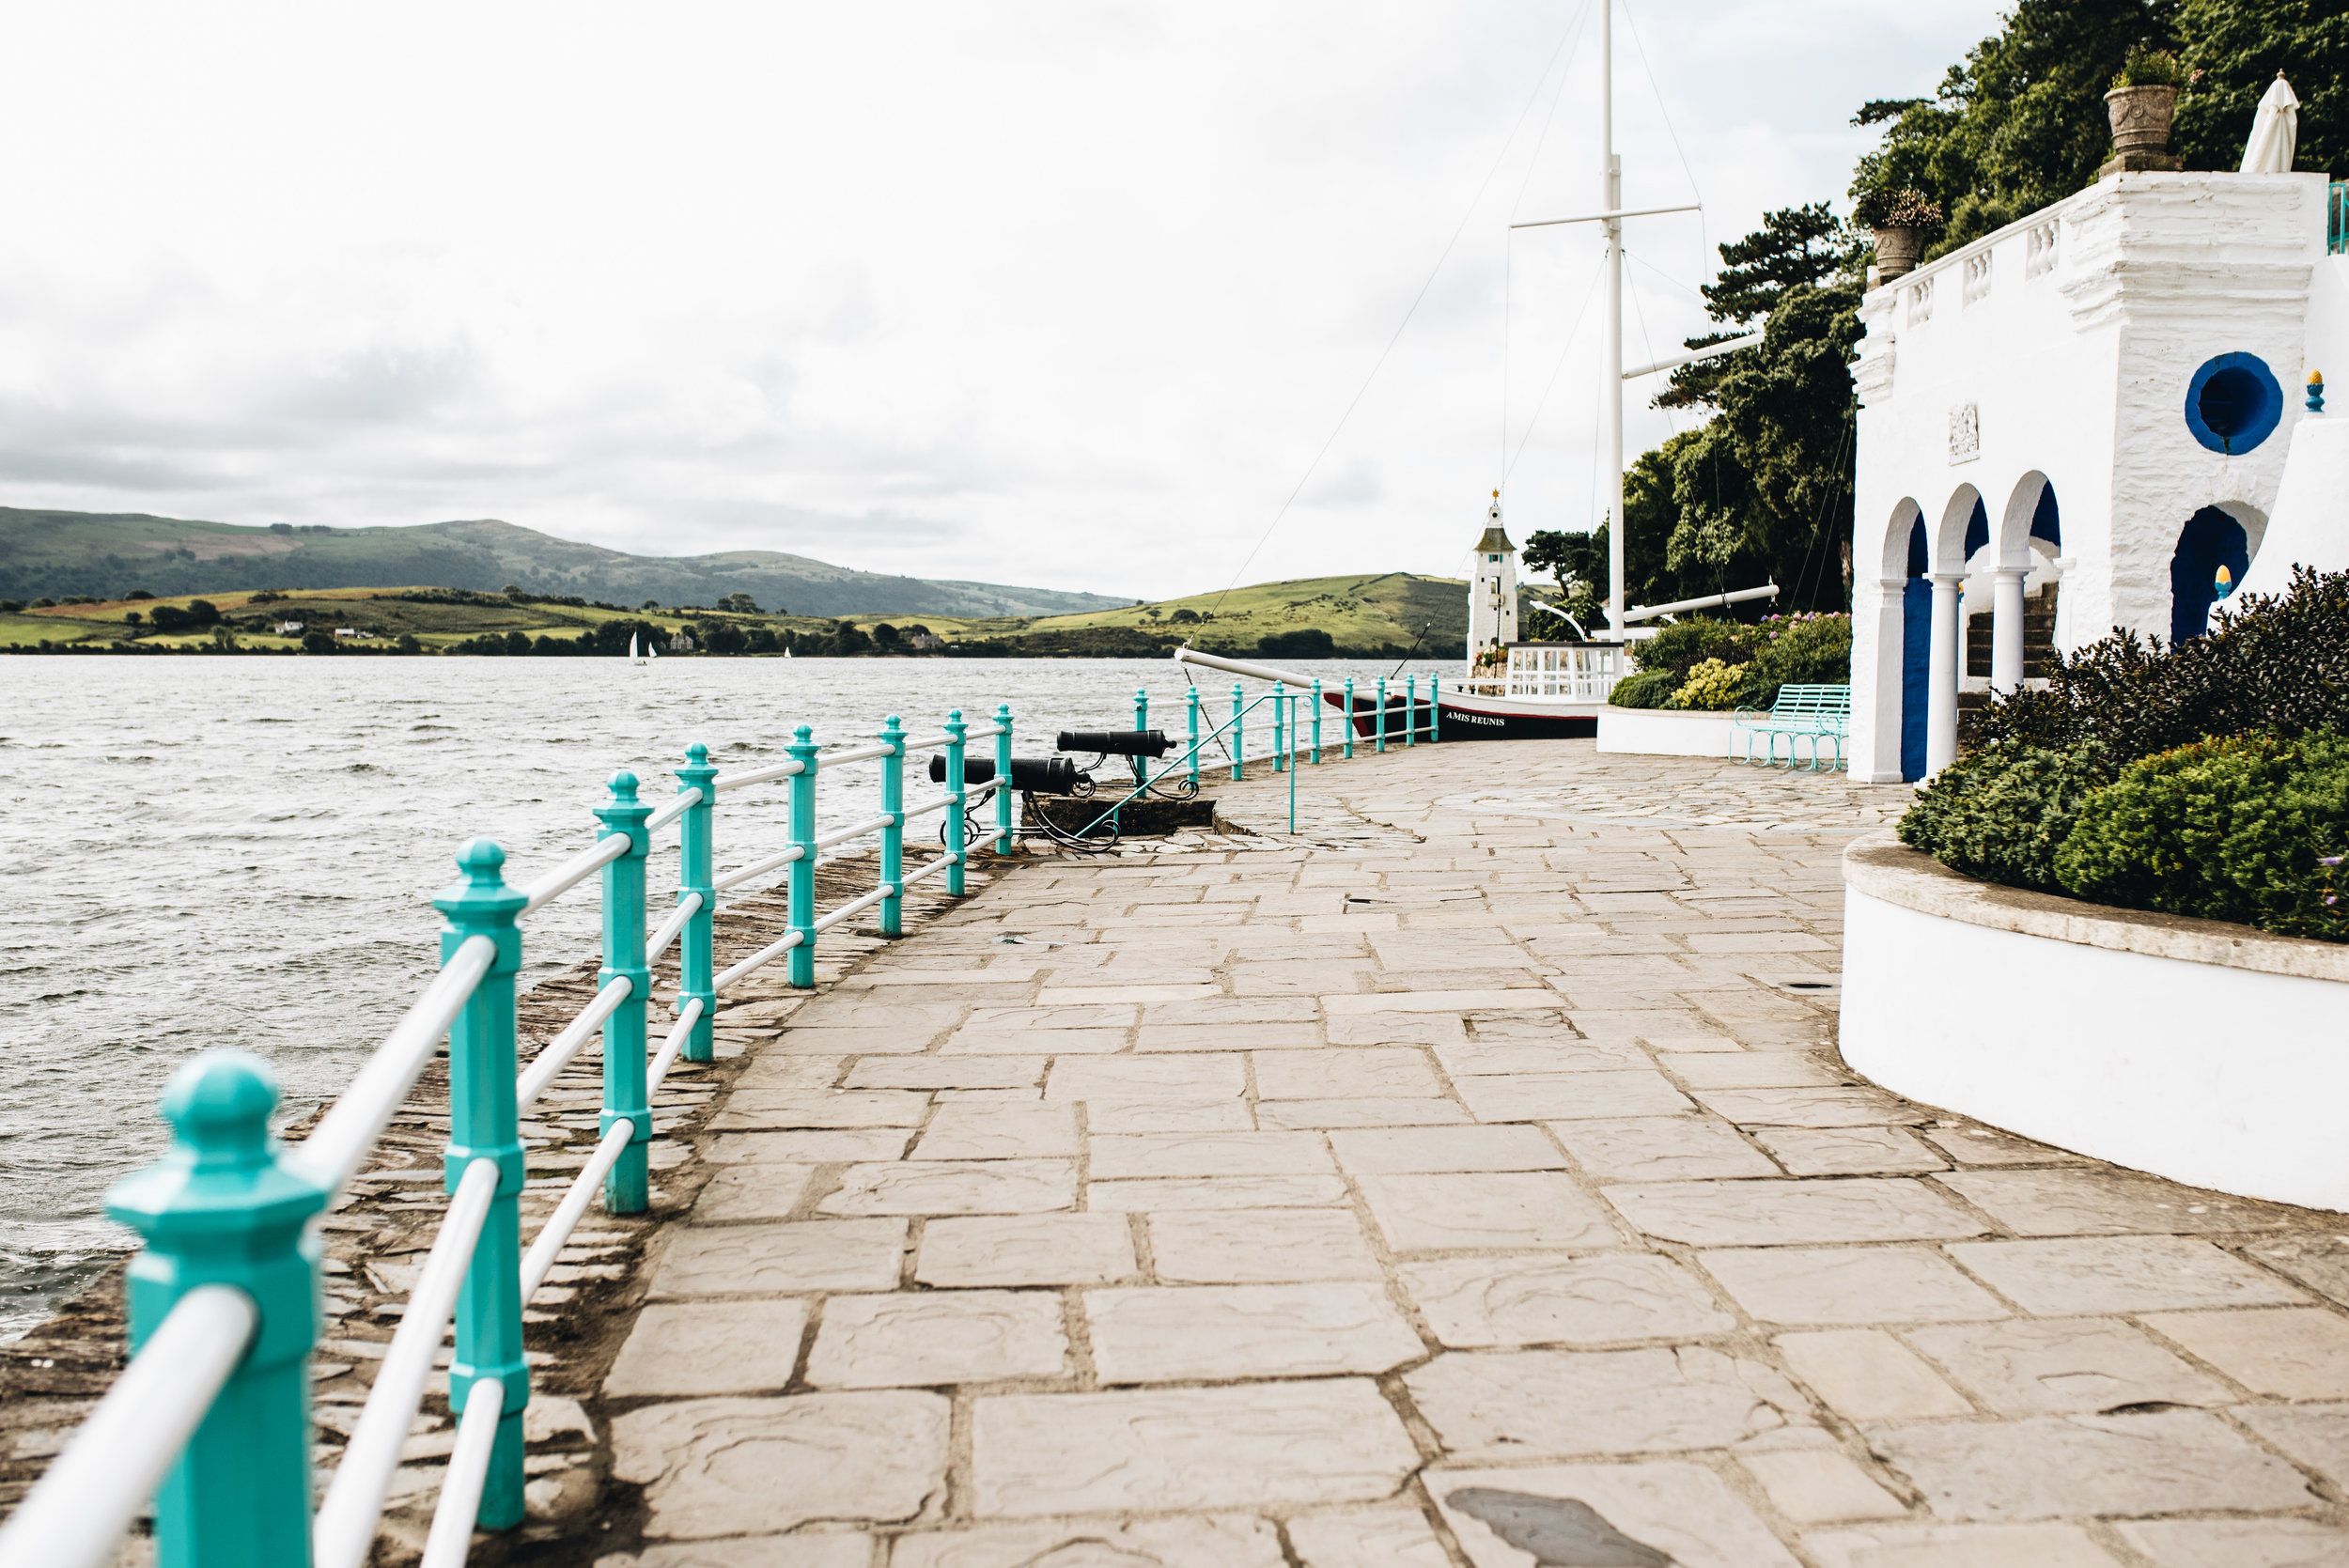 A holiday in North Wales - Portmeiron